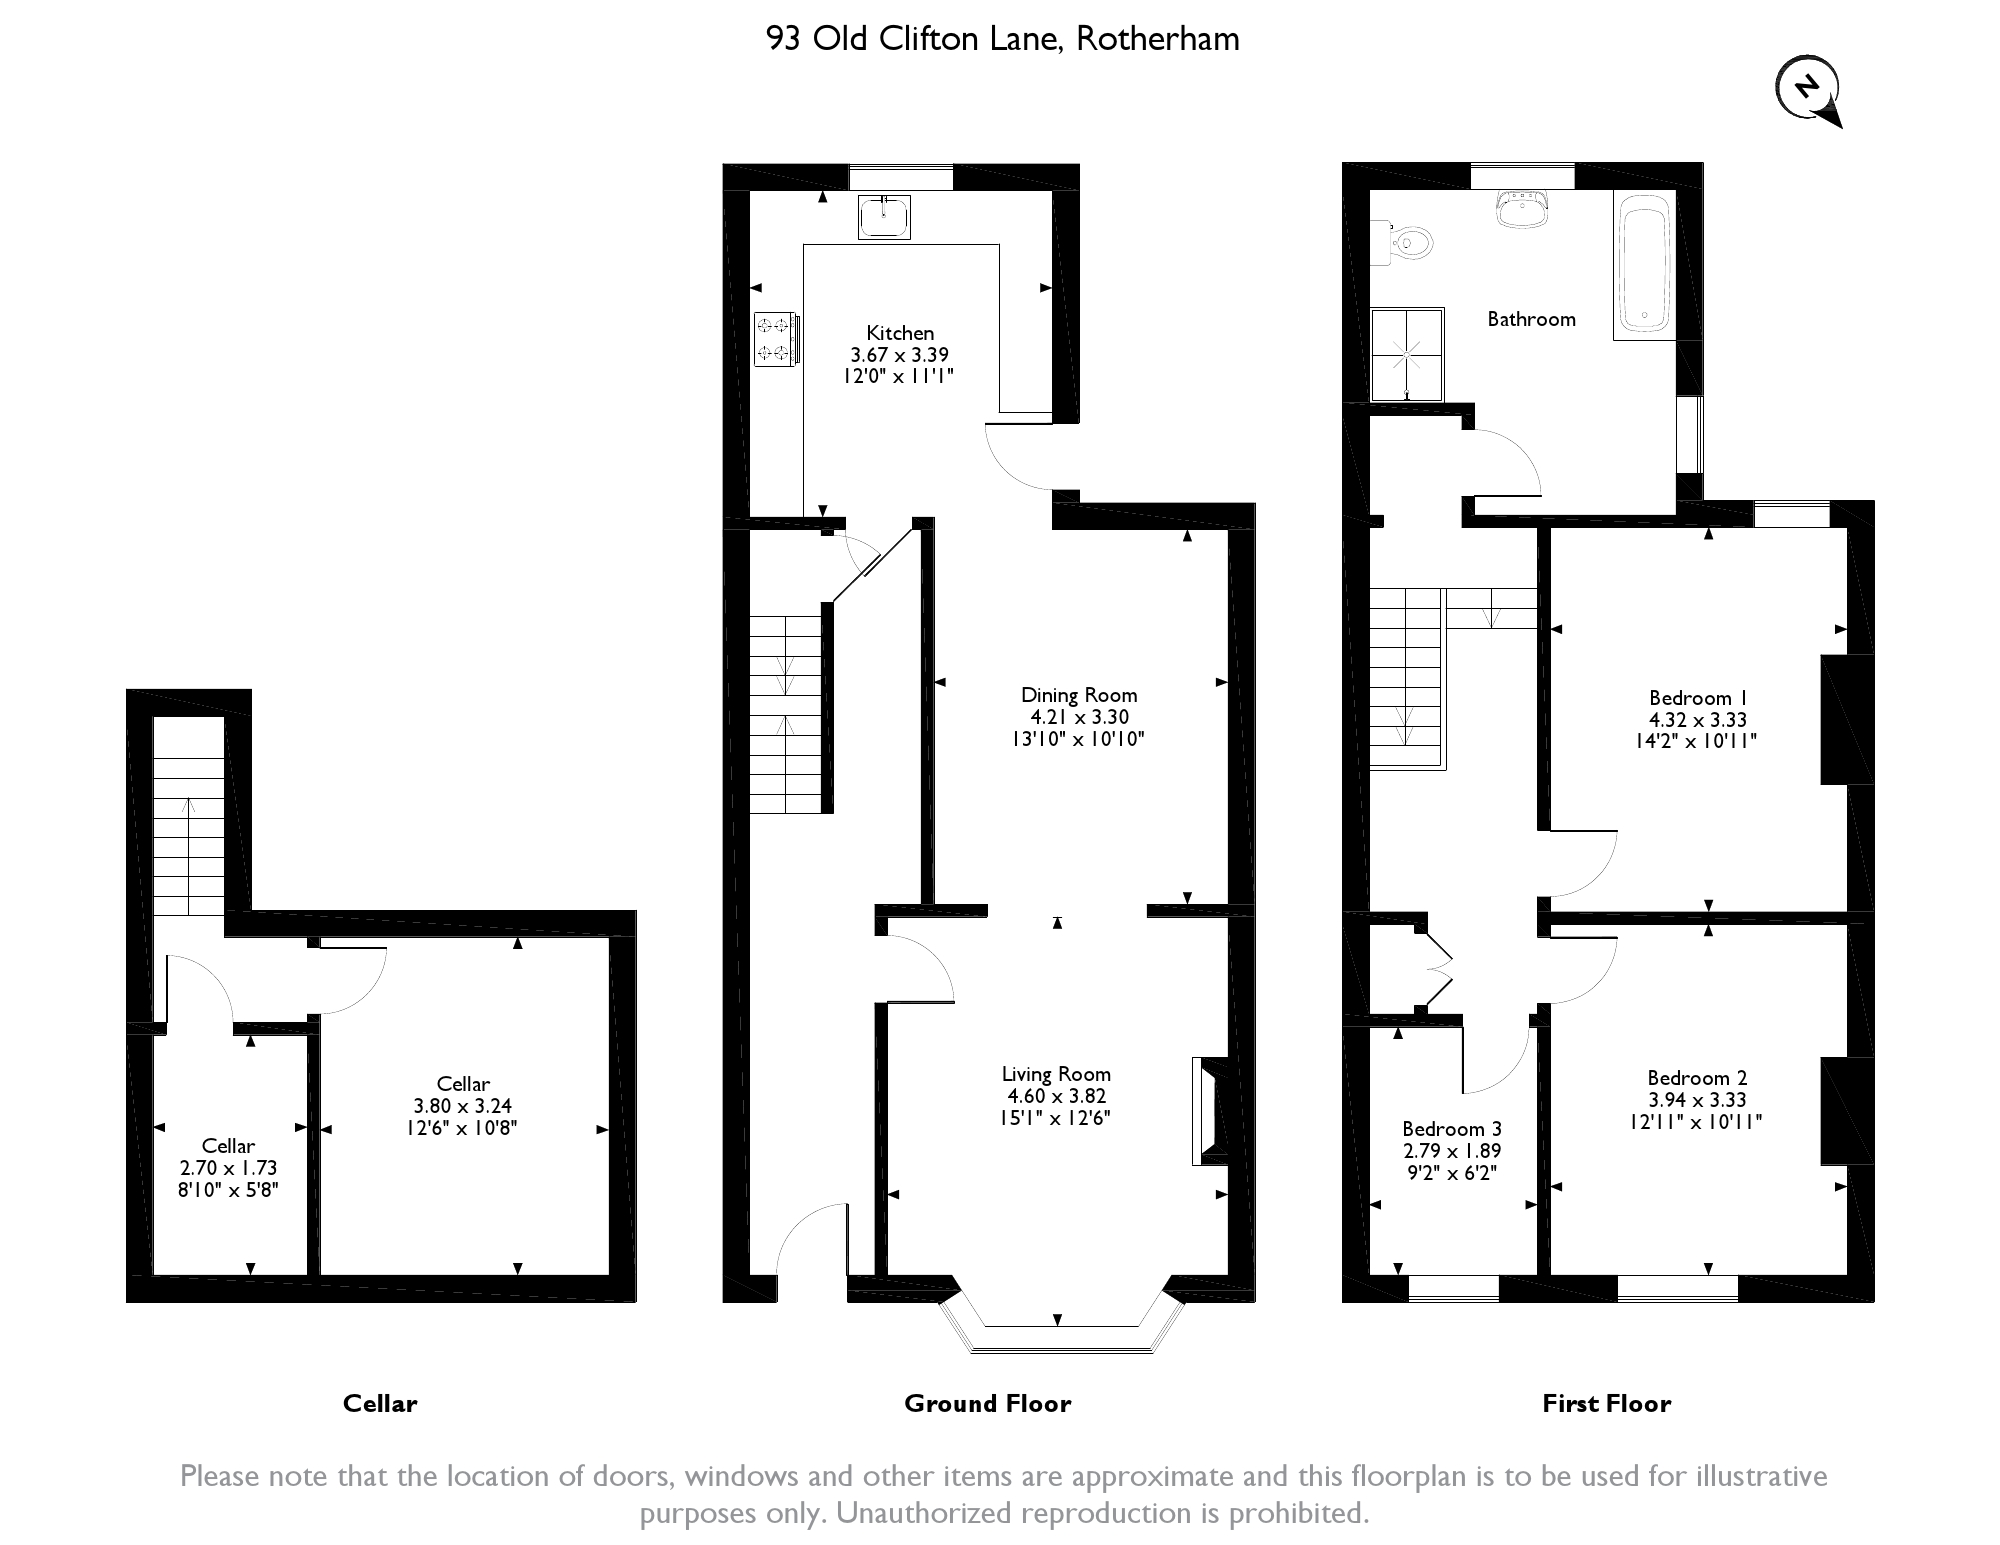 Old Clifton Lane, Rotherham, S65 floor plan